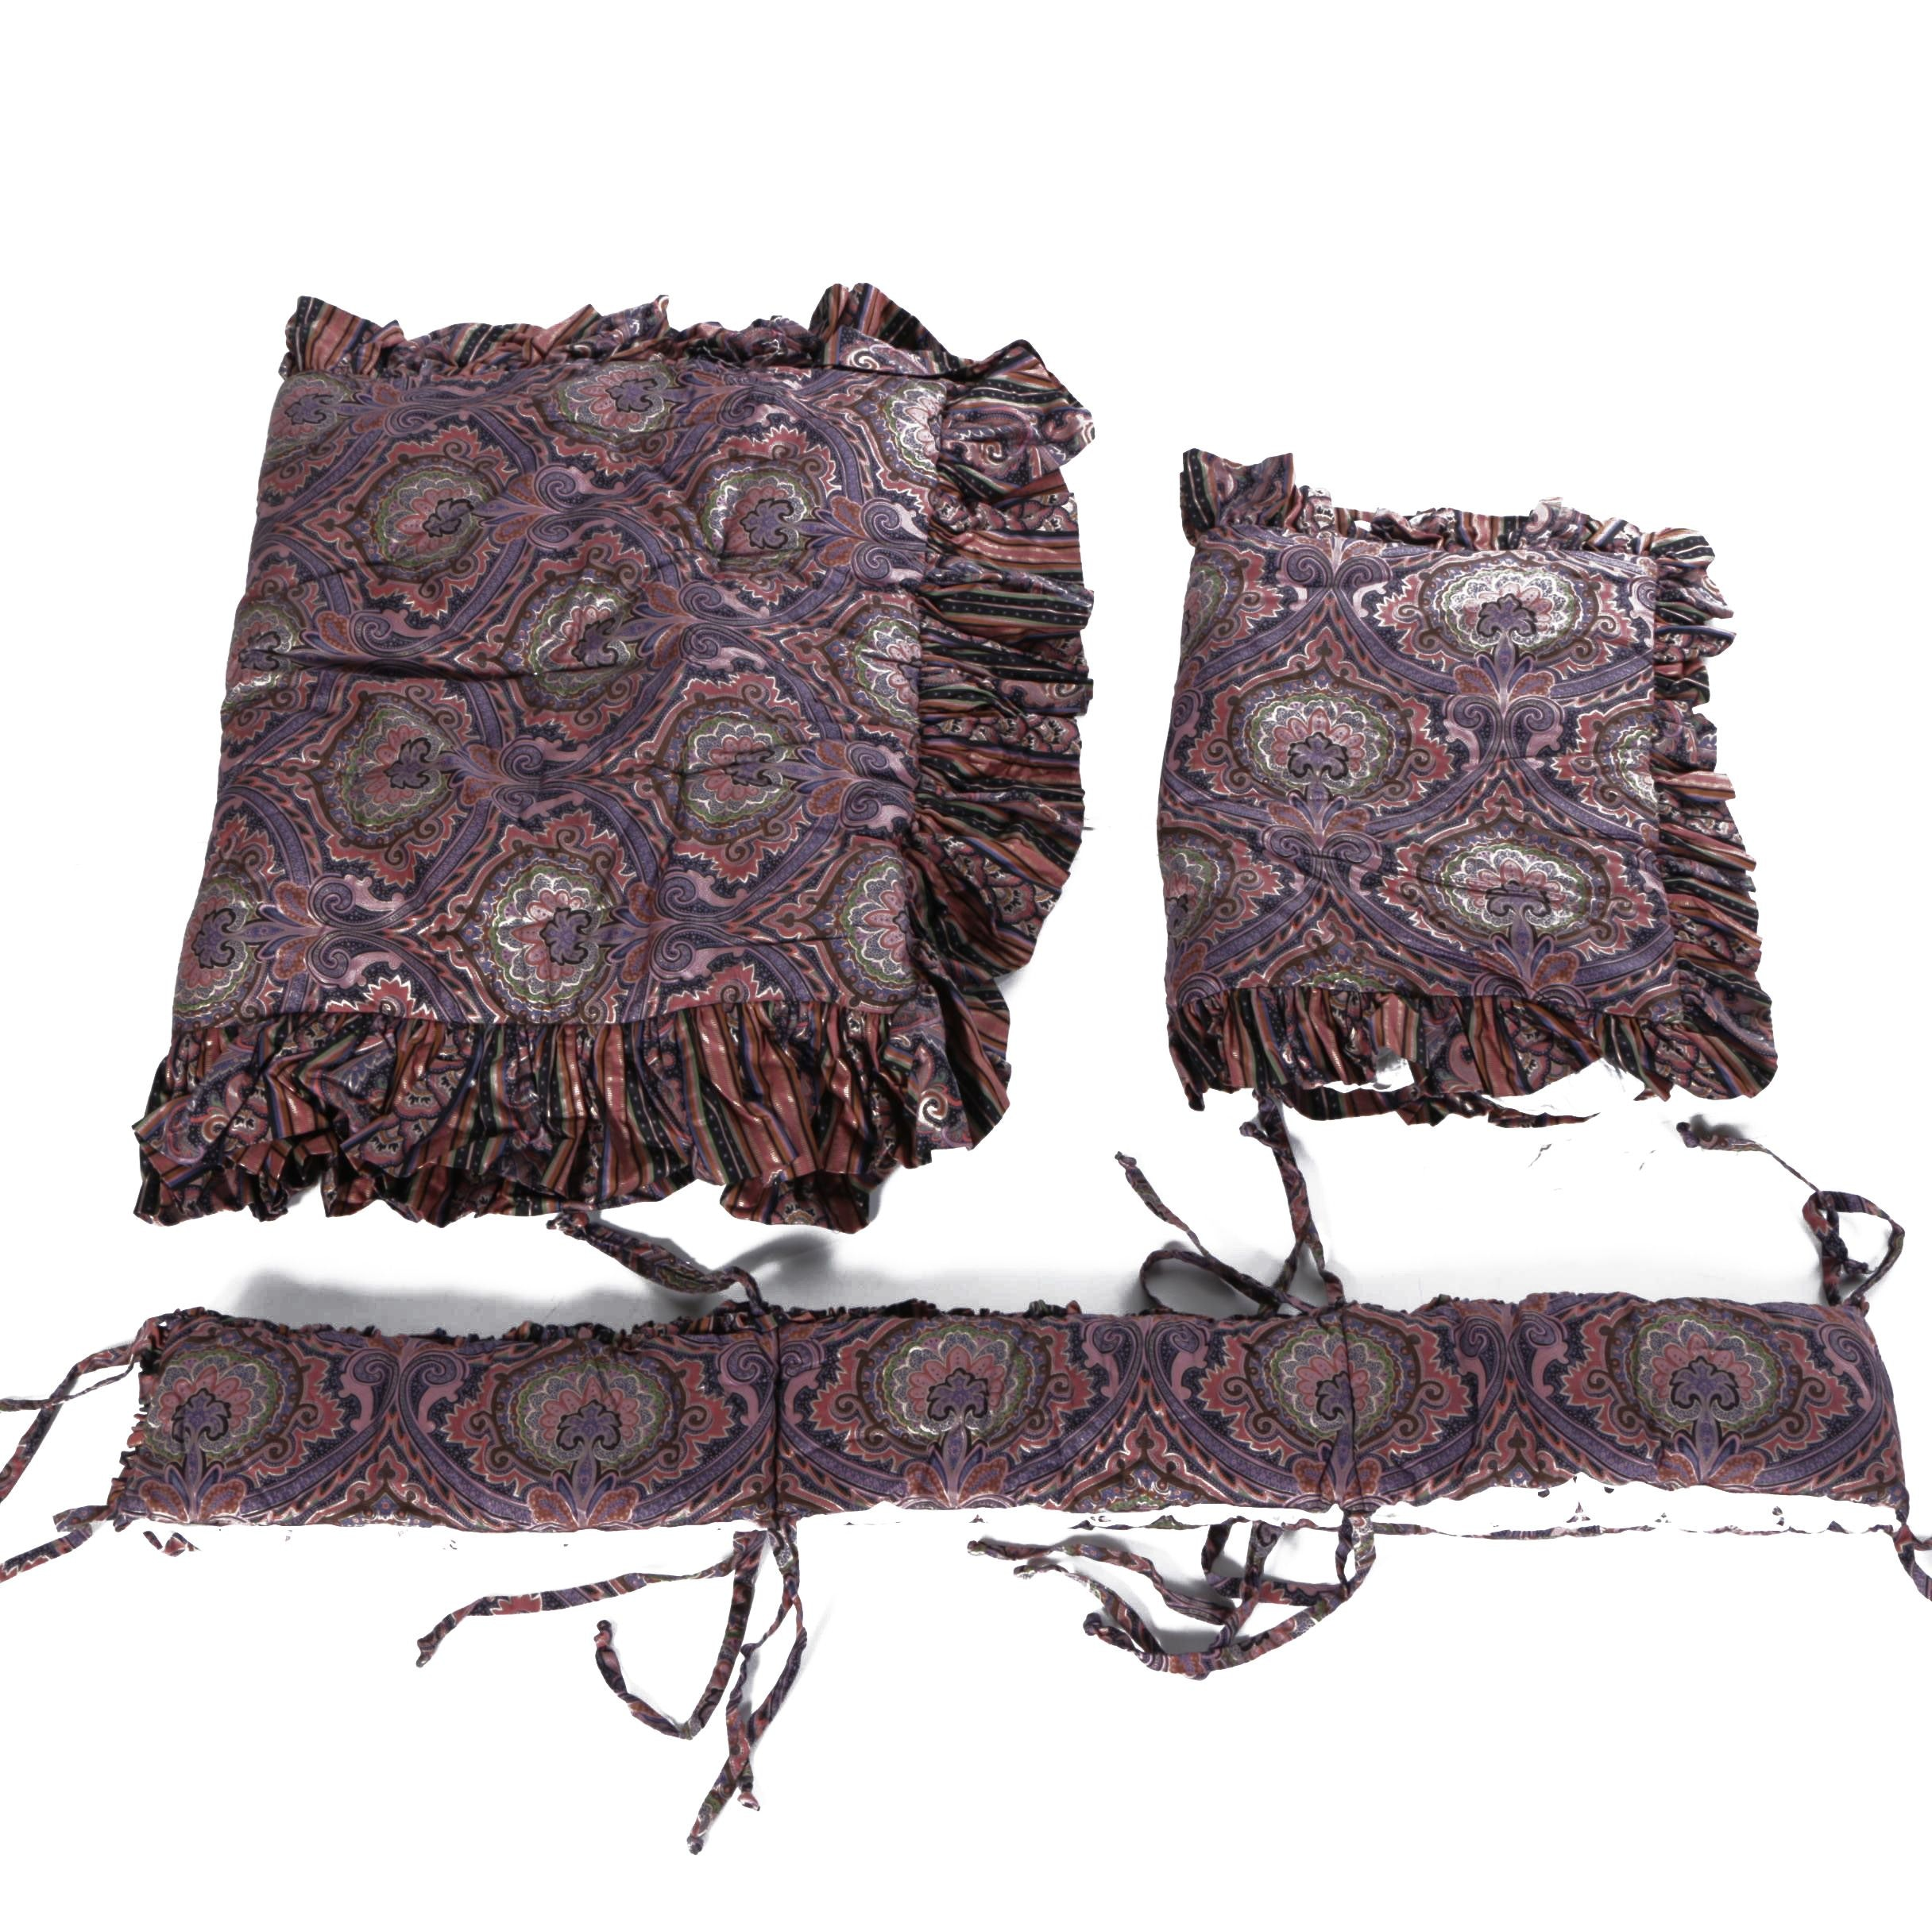 Paisley Patterned Bedding